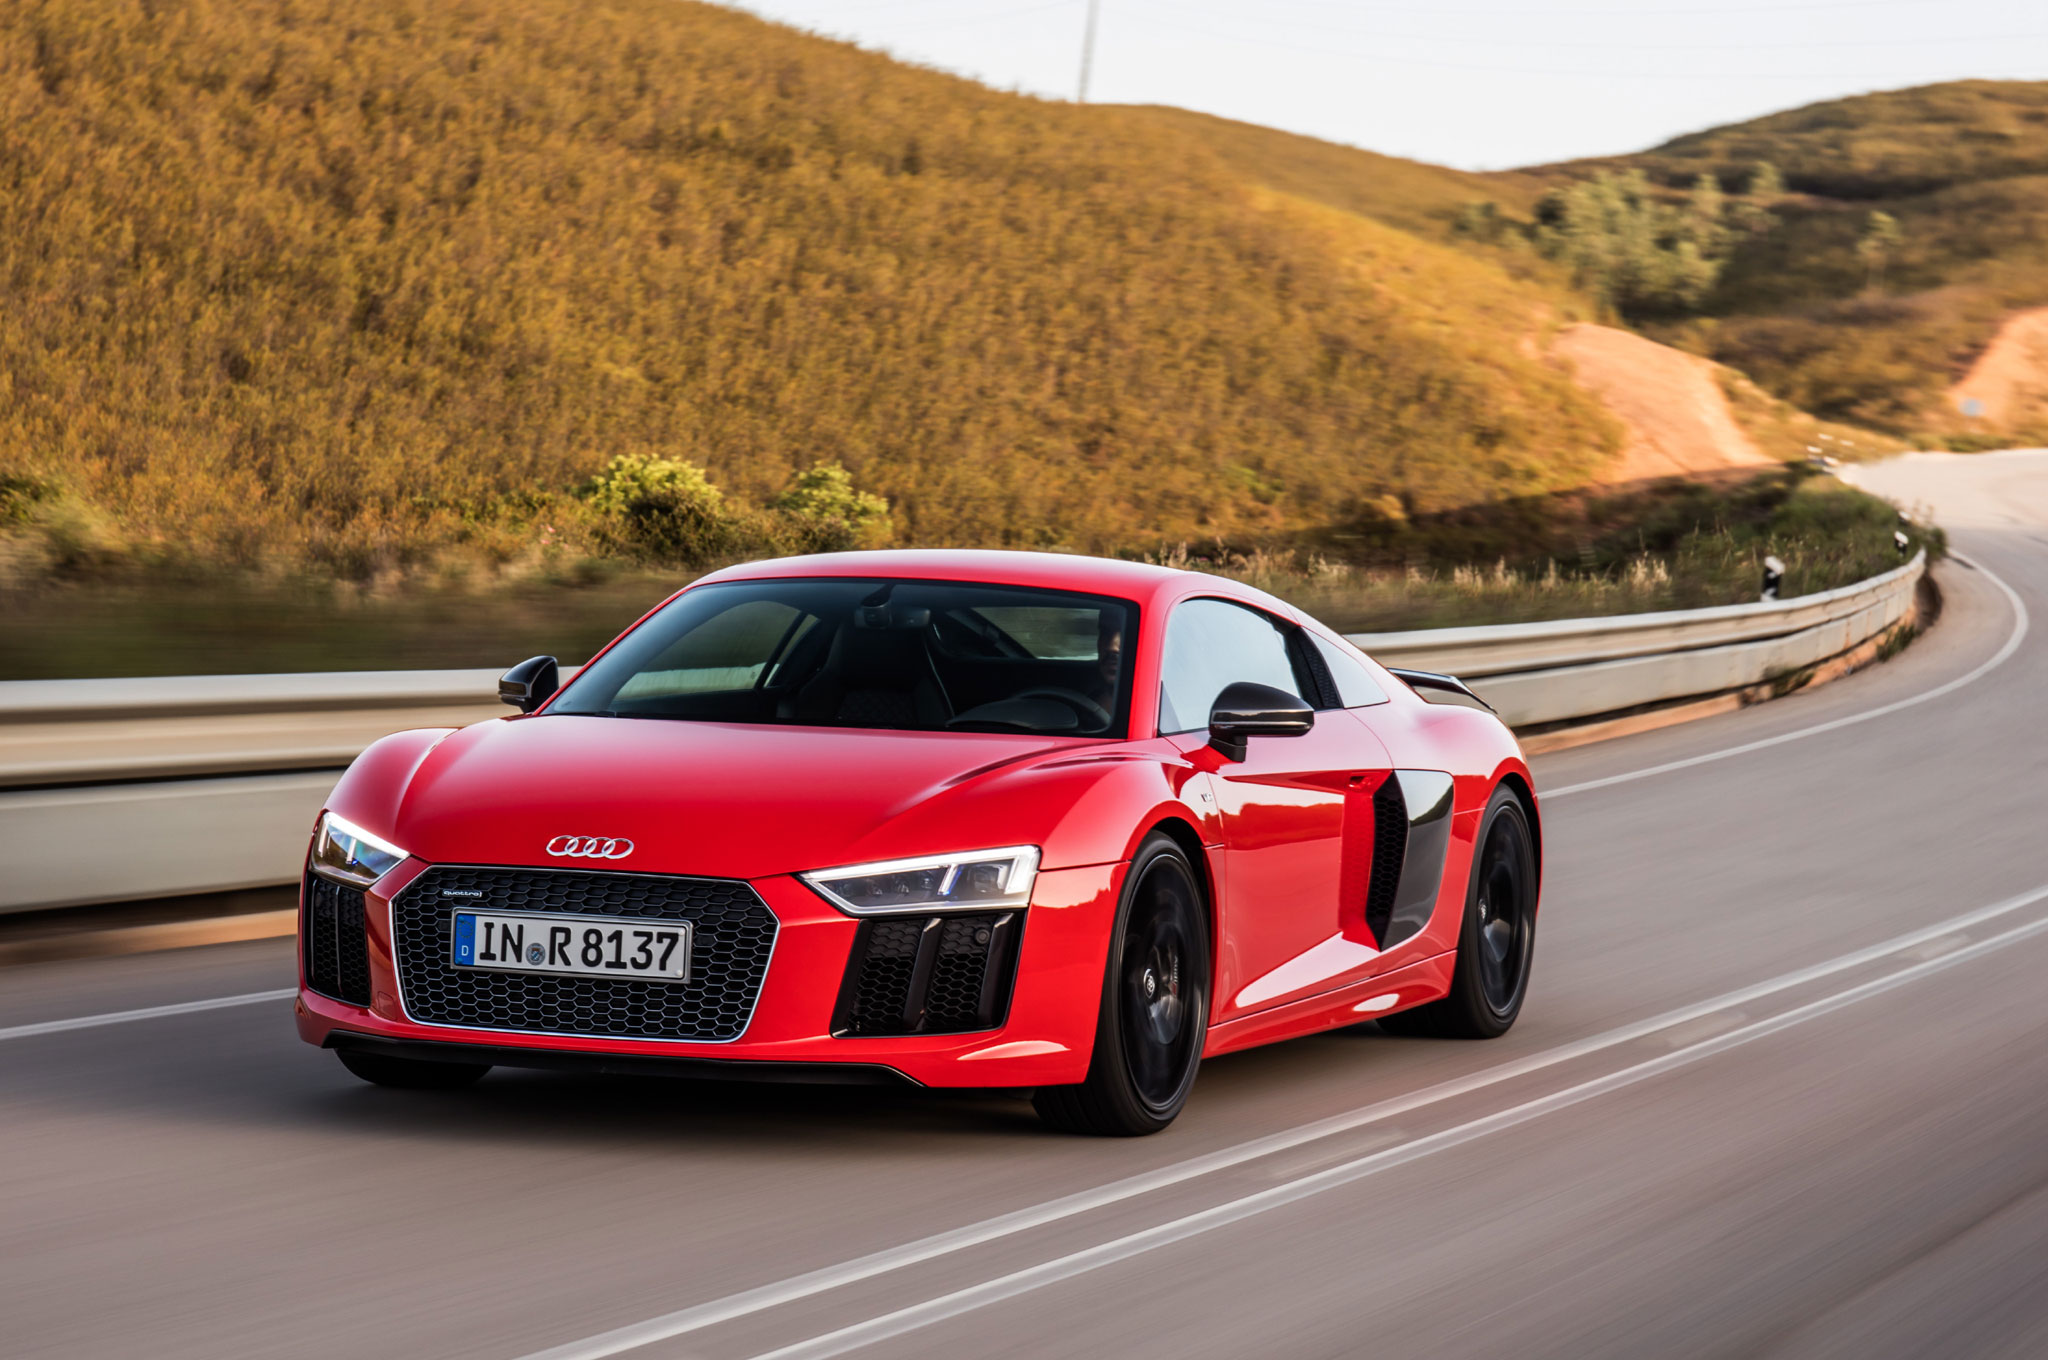 2017 Audi R8 V10 Plus Review